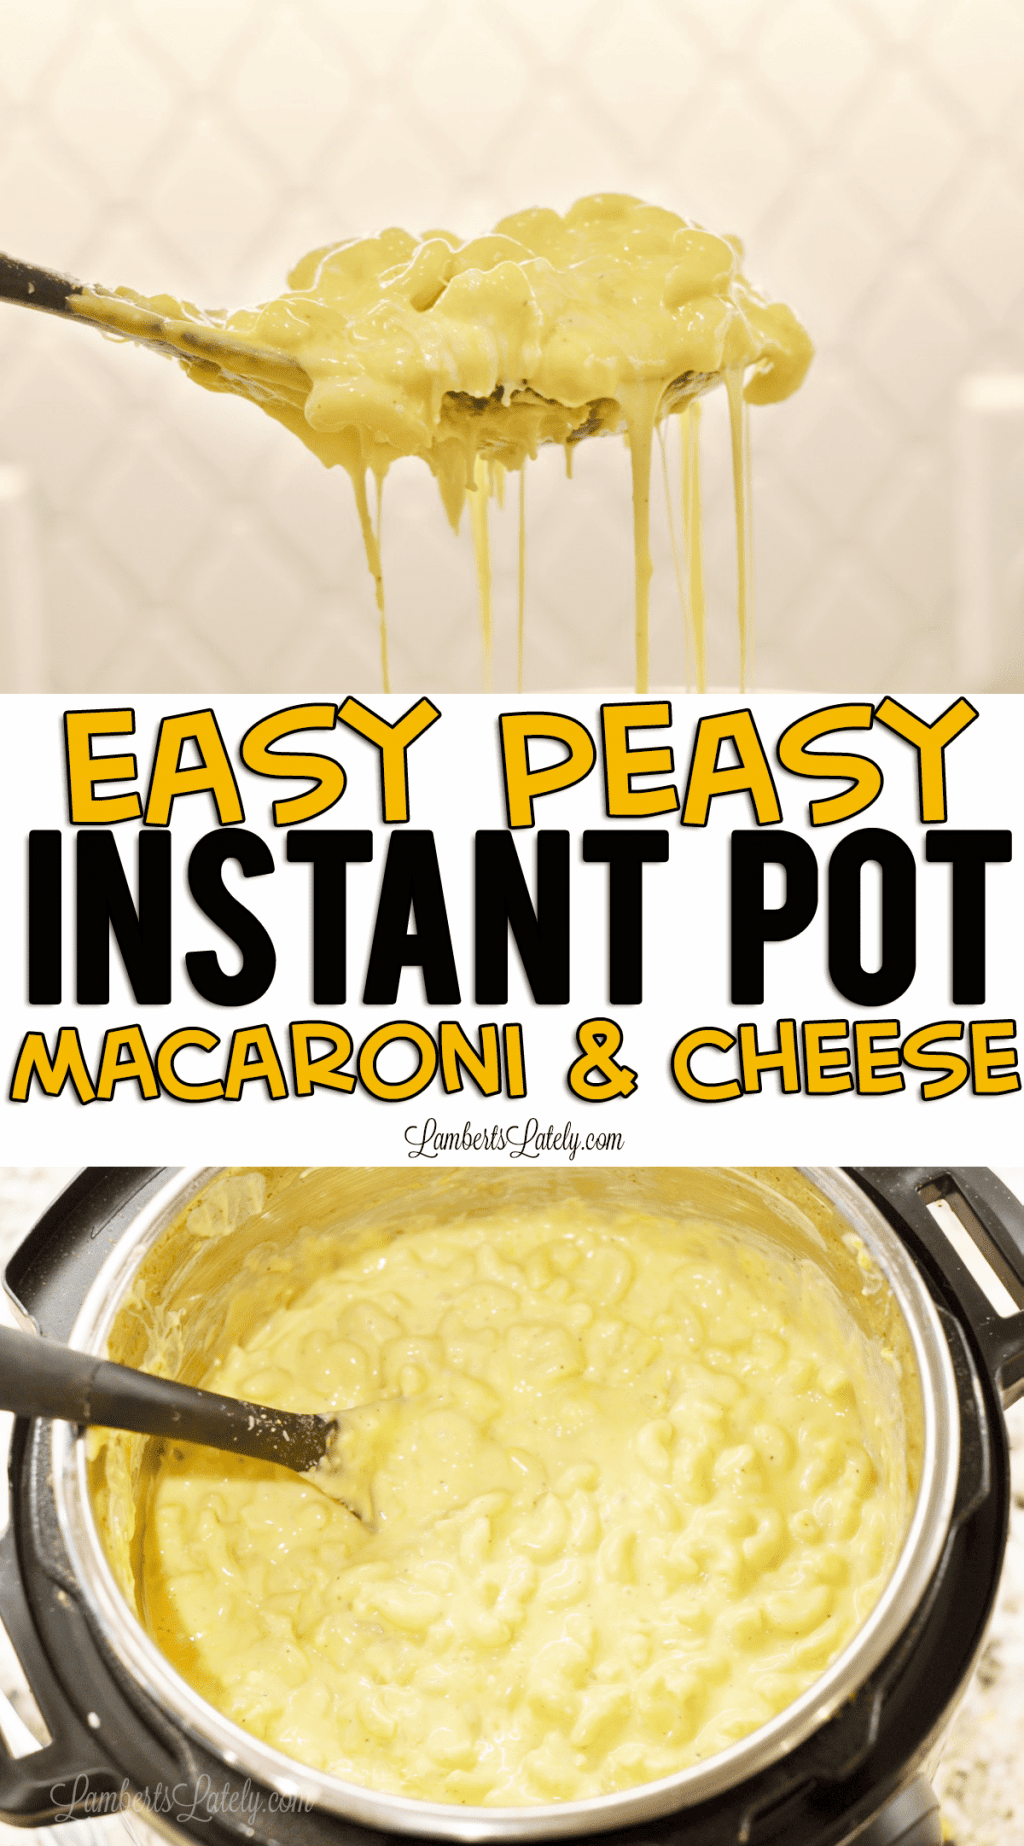 This is such a great recipe for easy Instant Pot Macaroni and Cheese! It uses evaporated milk, soup, and cheddar/colby jack cheeses to make the dish super creamy. This is one definitely kid-approved pressure cooker recipe!